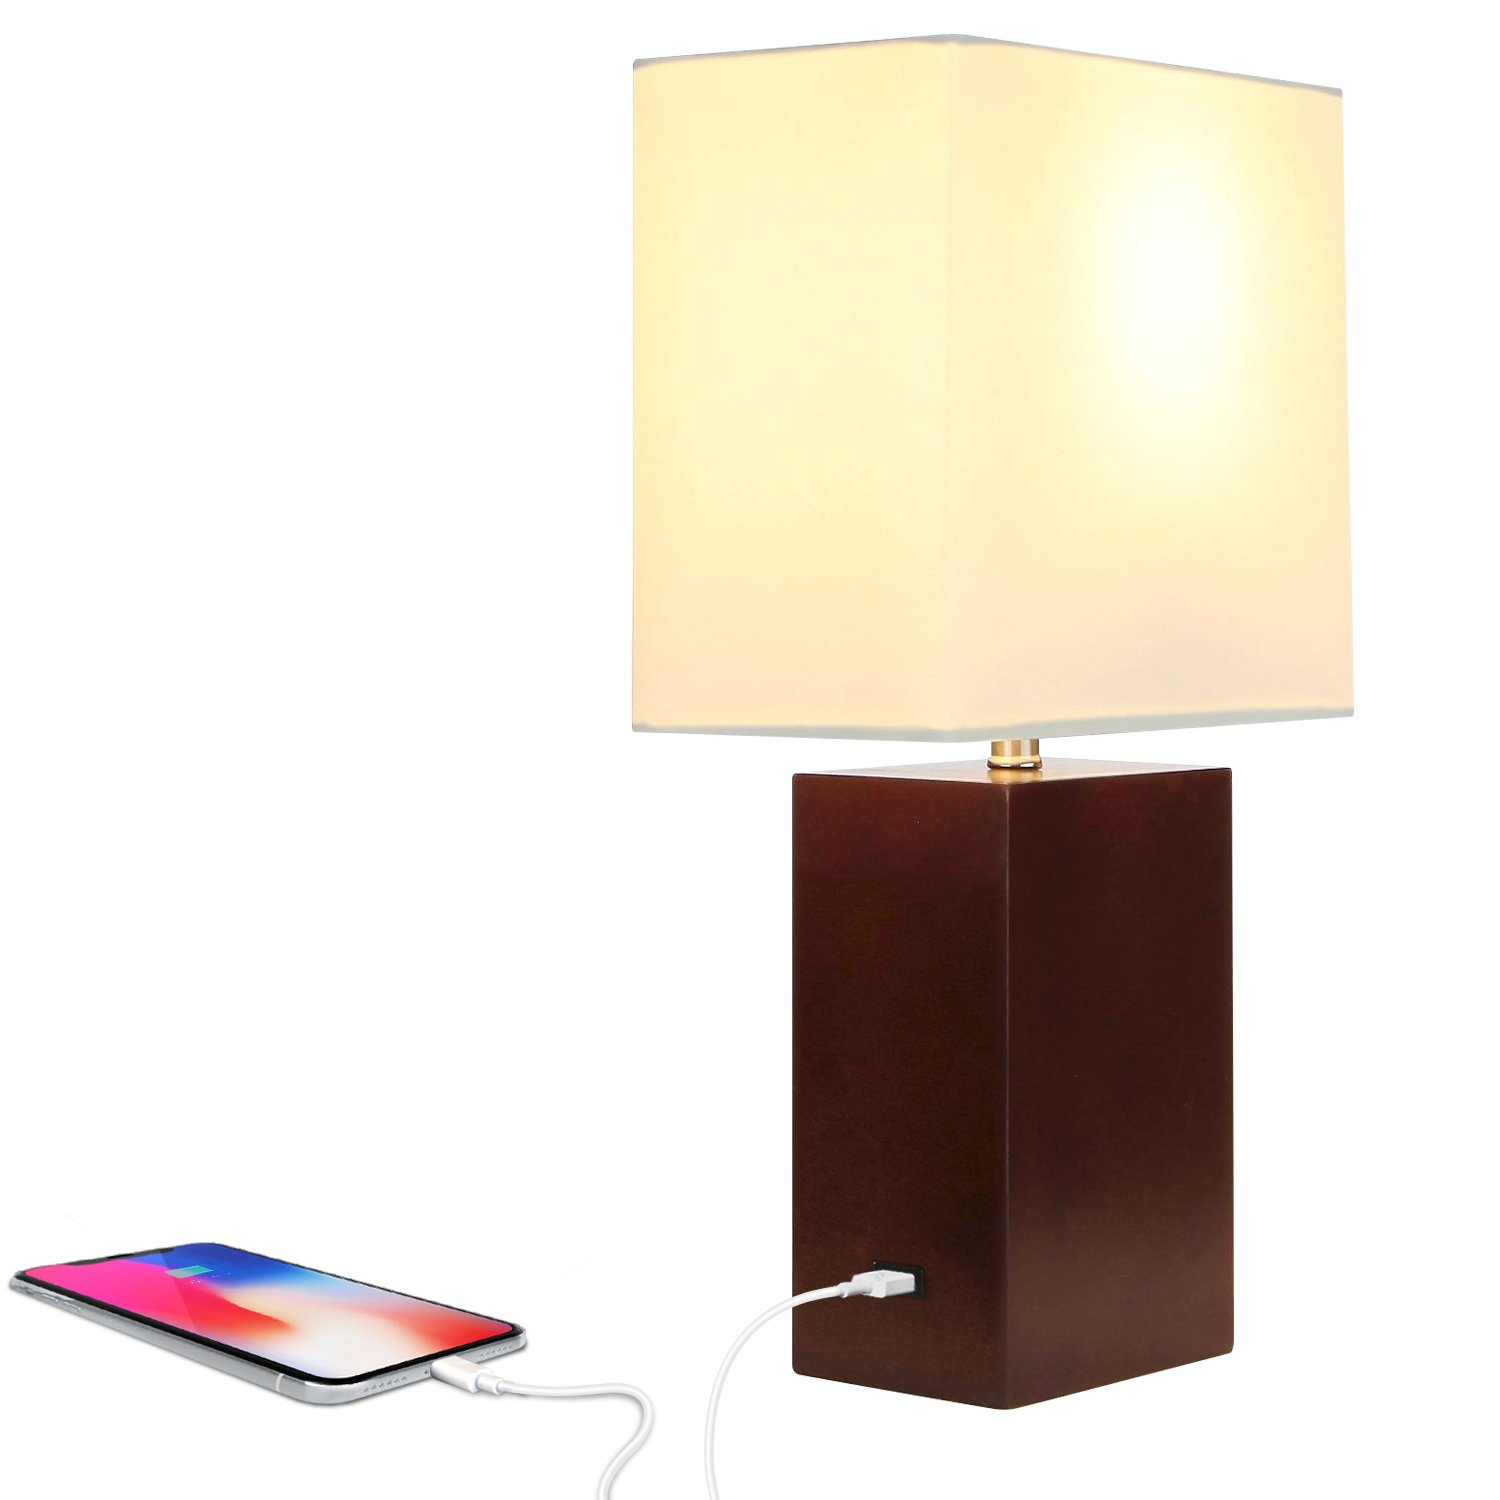 Brightech Mode LED USB Side Table & Desk Lamp – Modern Lamp for Bedroom, Living Room or Office with Ambient Lighting, Unique Lampshade & Useful USB Port Perfect Bedside Nightstand Light- Havana Brown